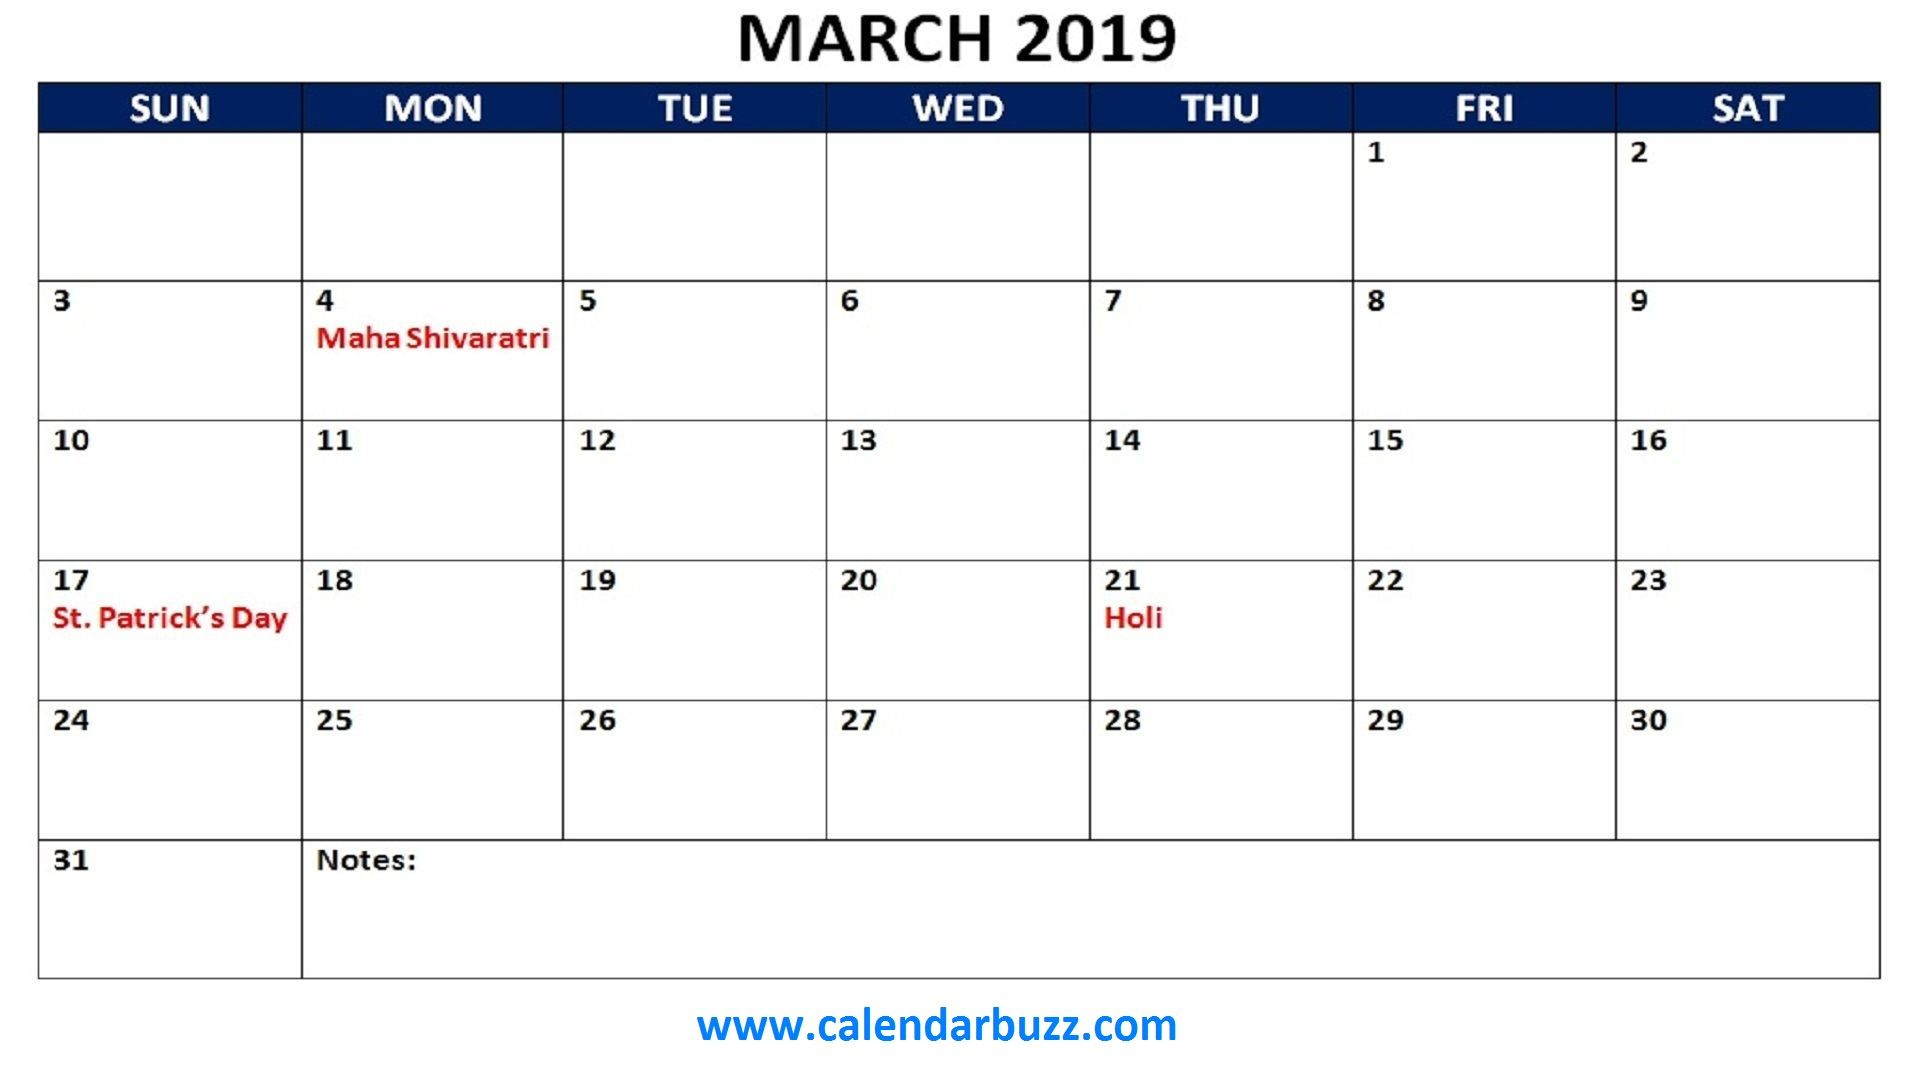 March 2019 Calendar With Holidays Printable